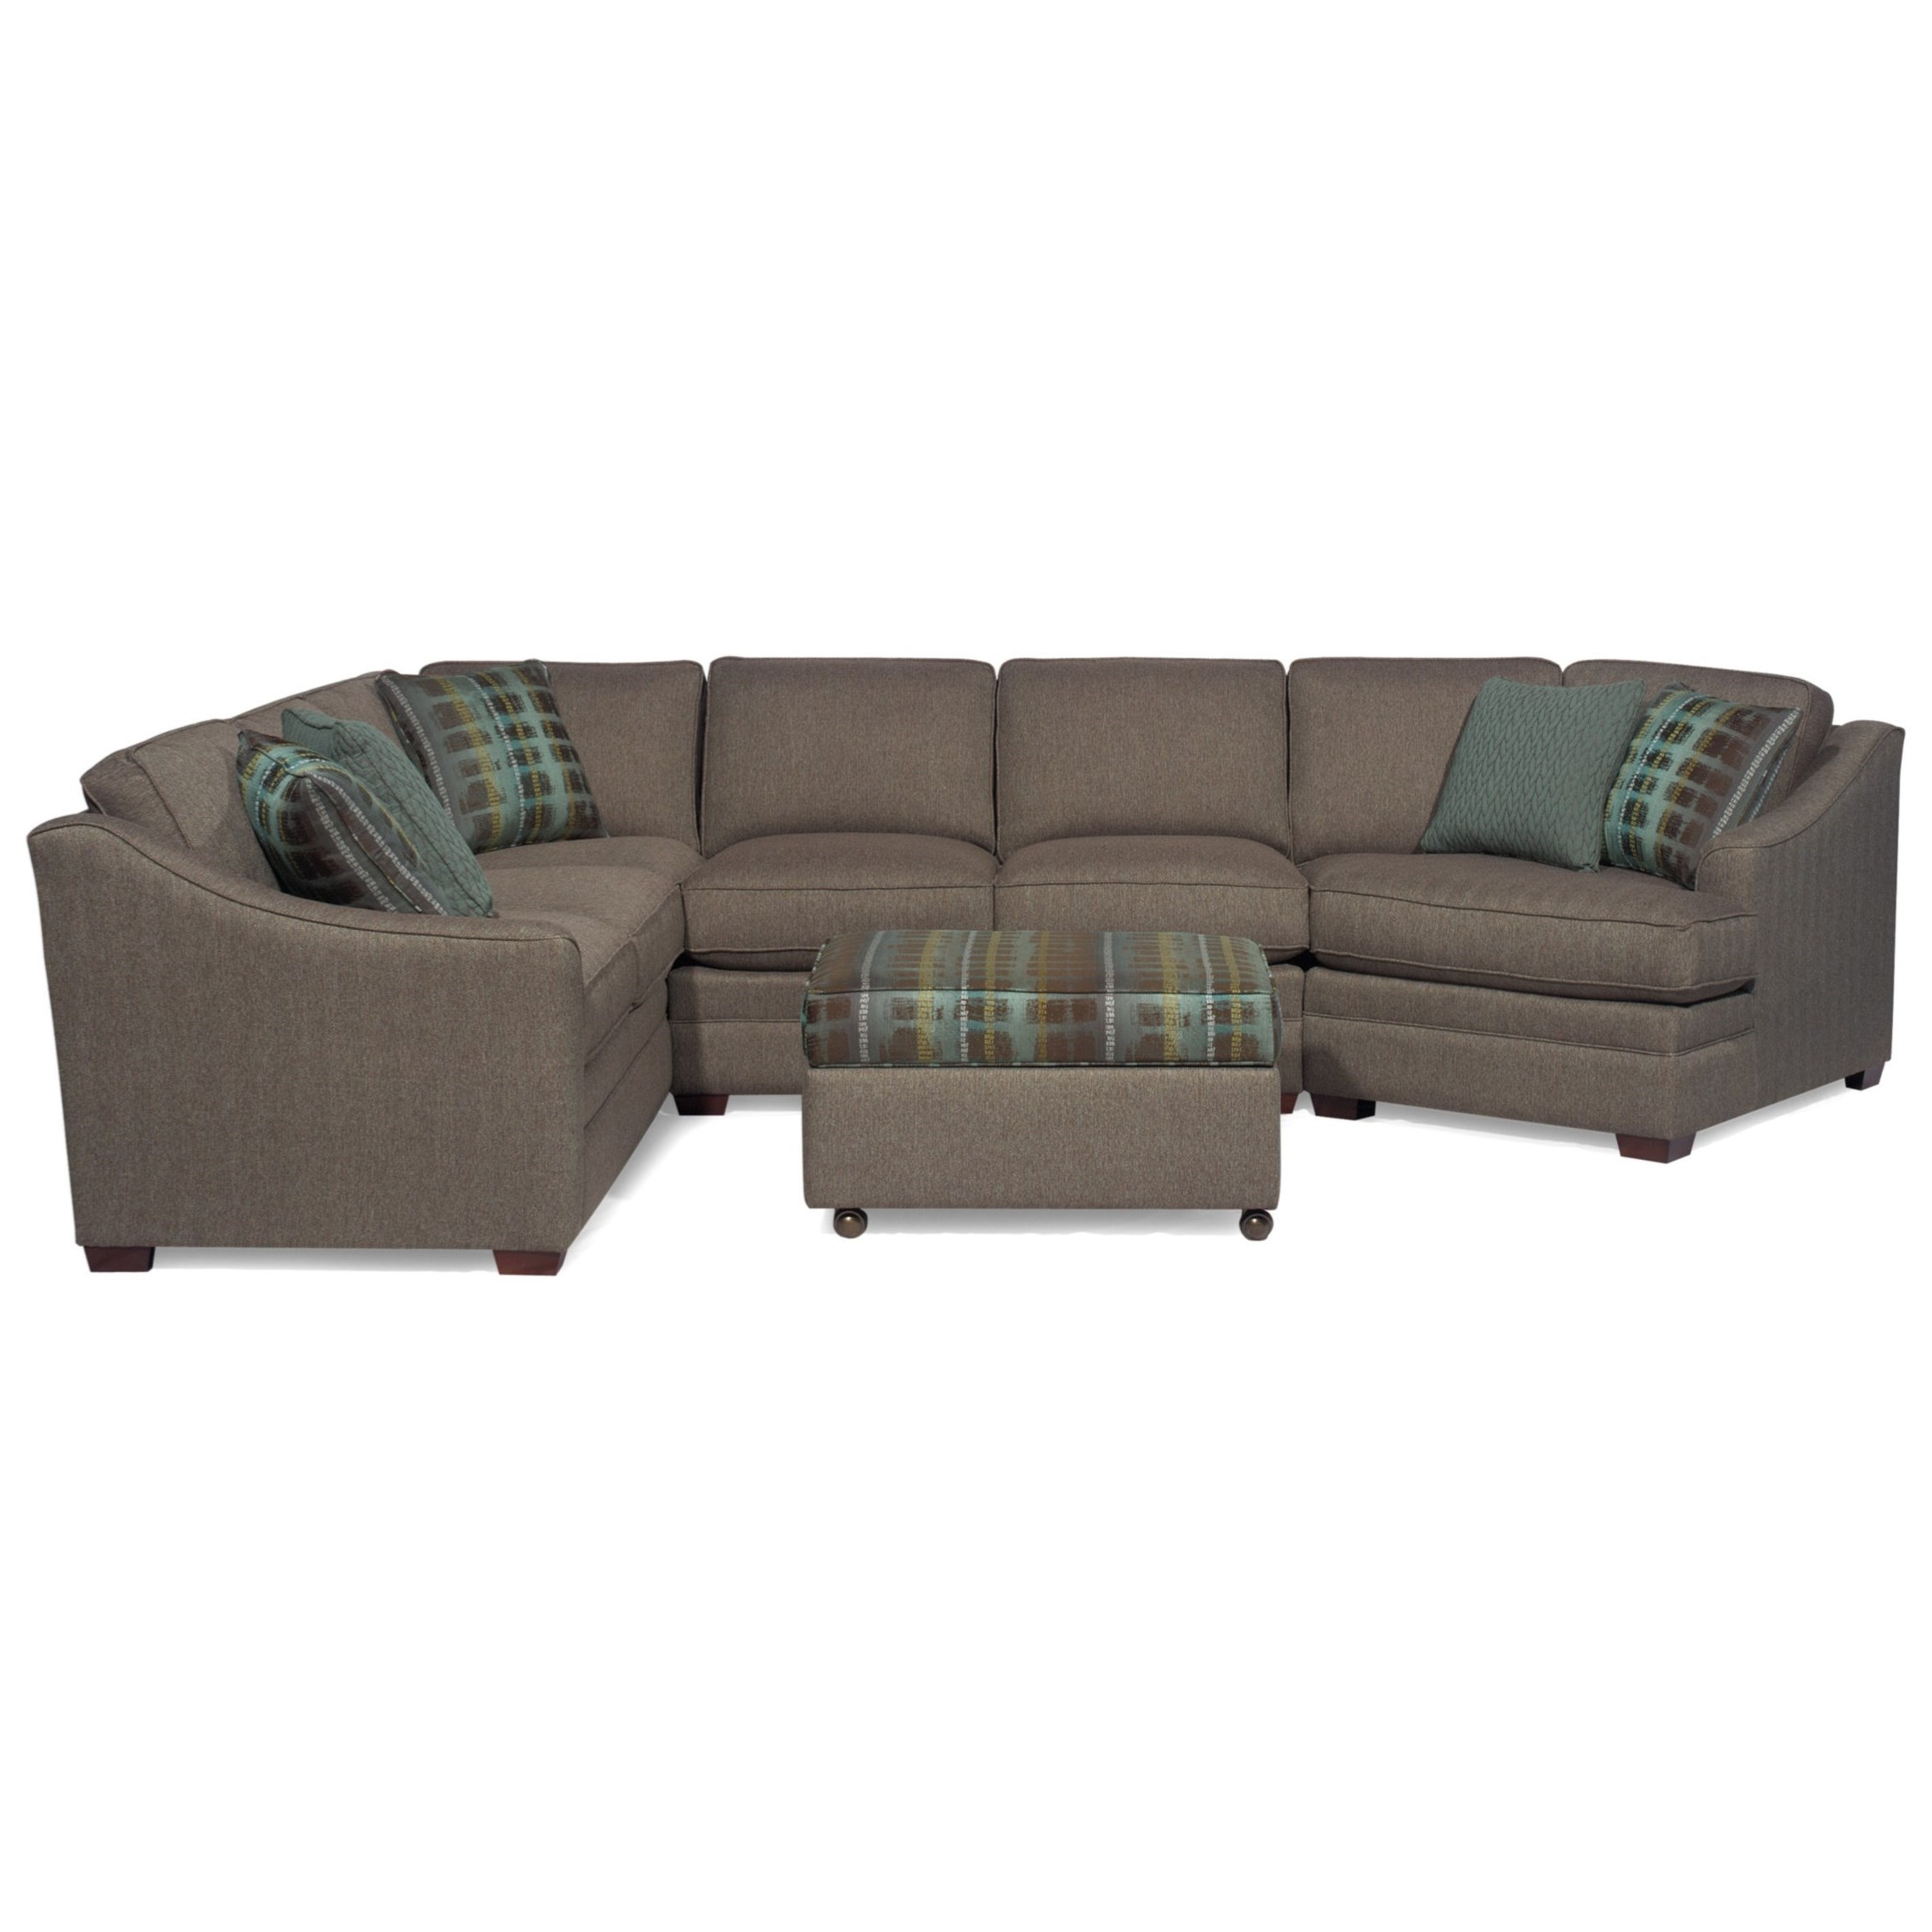 Well Known Avery 2 Piece Sectionals With Raf Armless Chaise For Craftmaster F9 Design Options <b>customizable</b> 3 Piece Sectional (View 10 of 20)